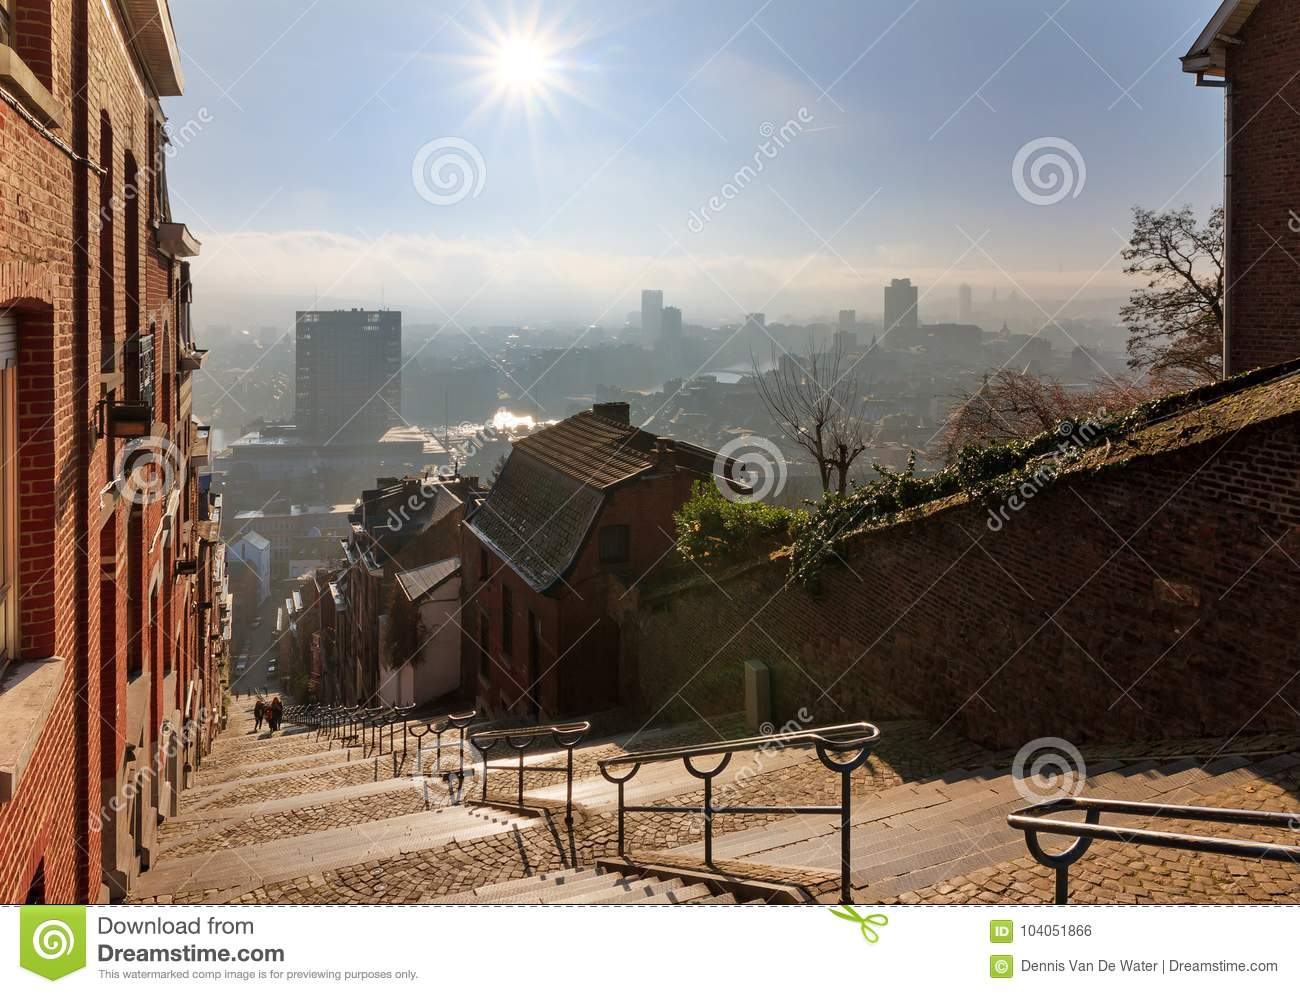 Outdoor Liege Morning View Over Liege In Winter Stock Photo Image Of Outdoor